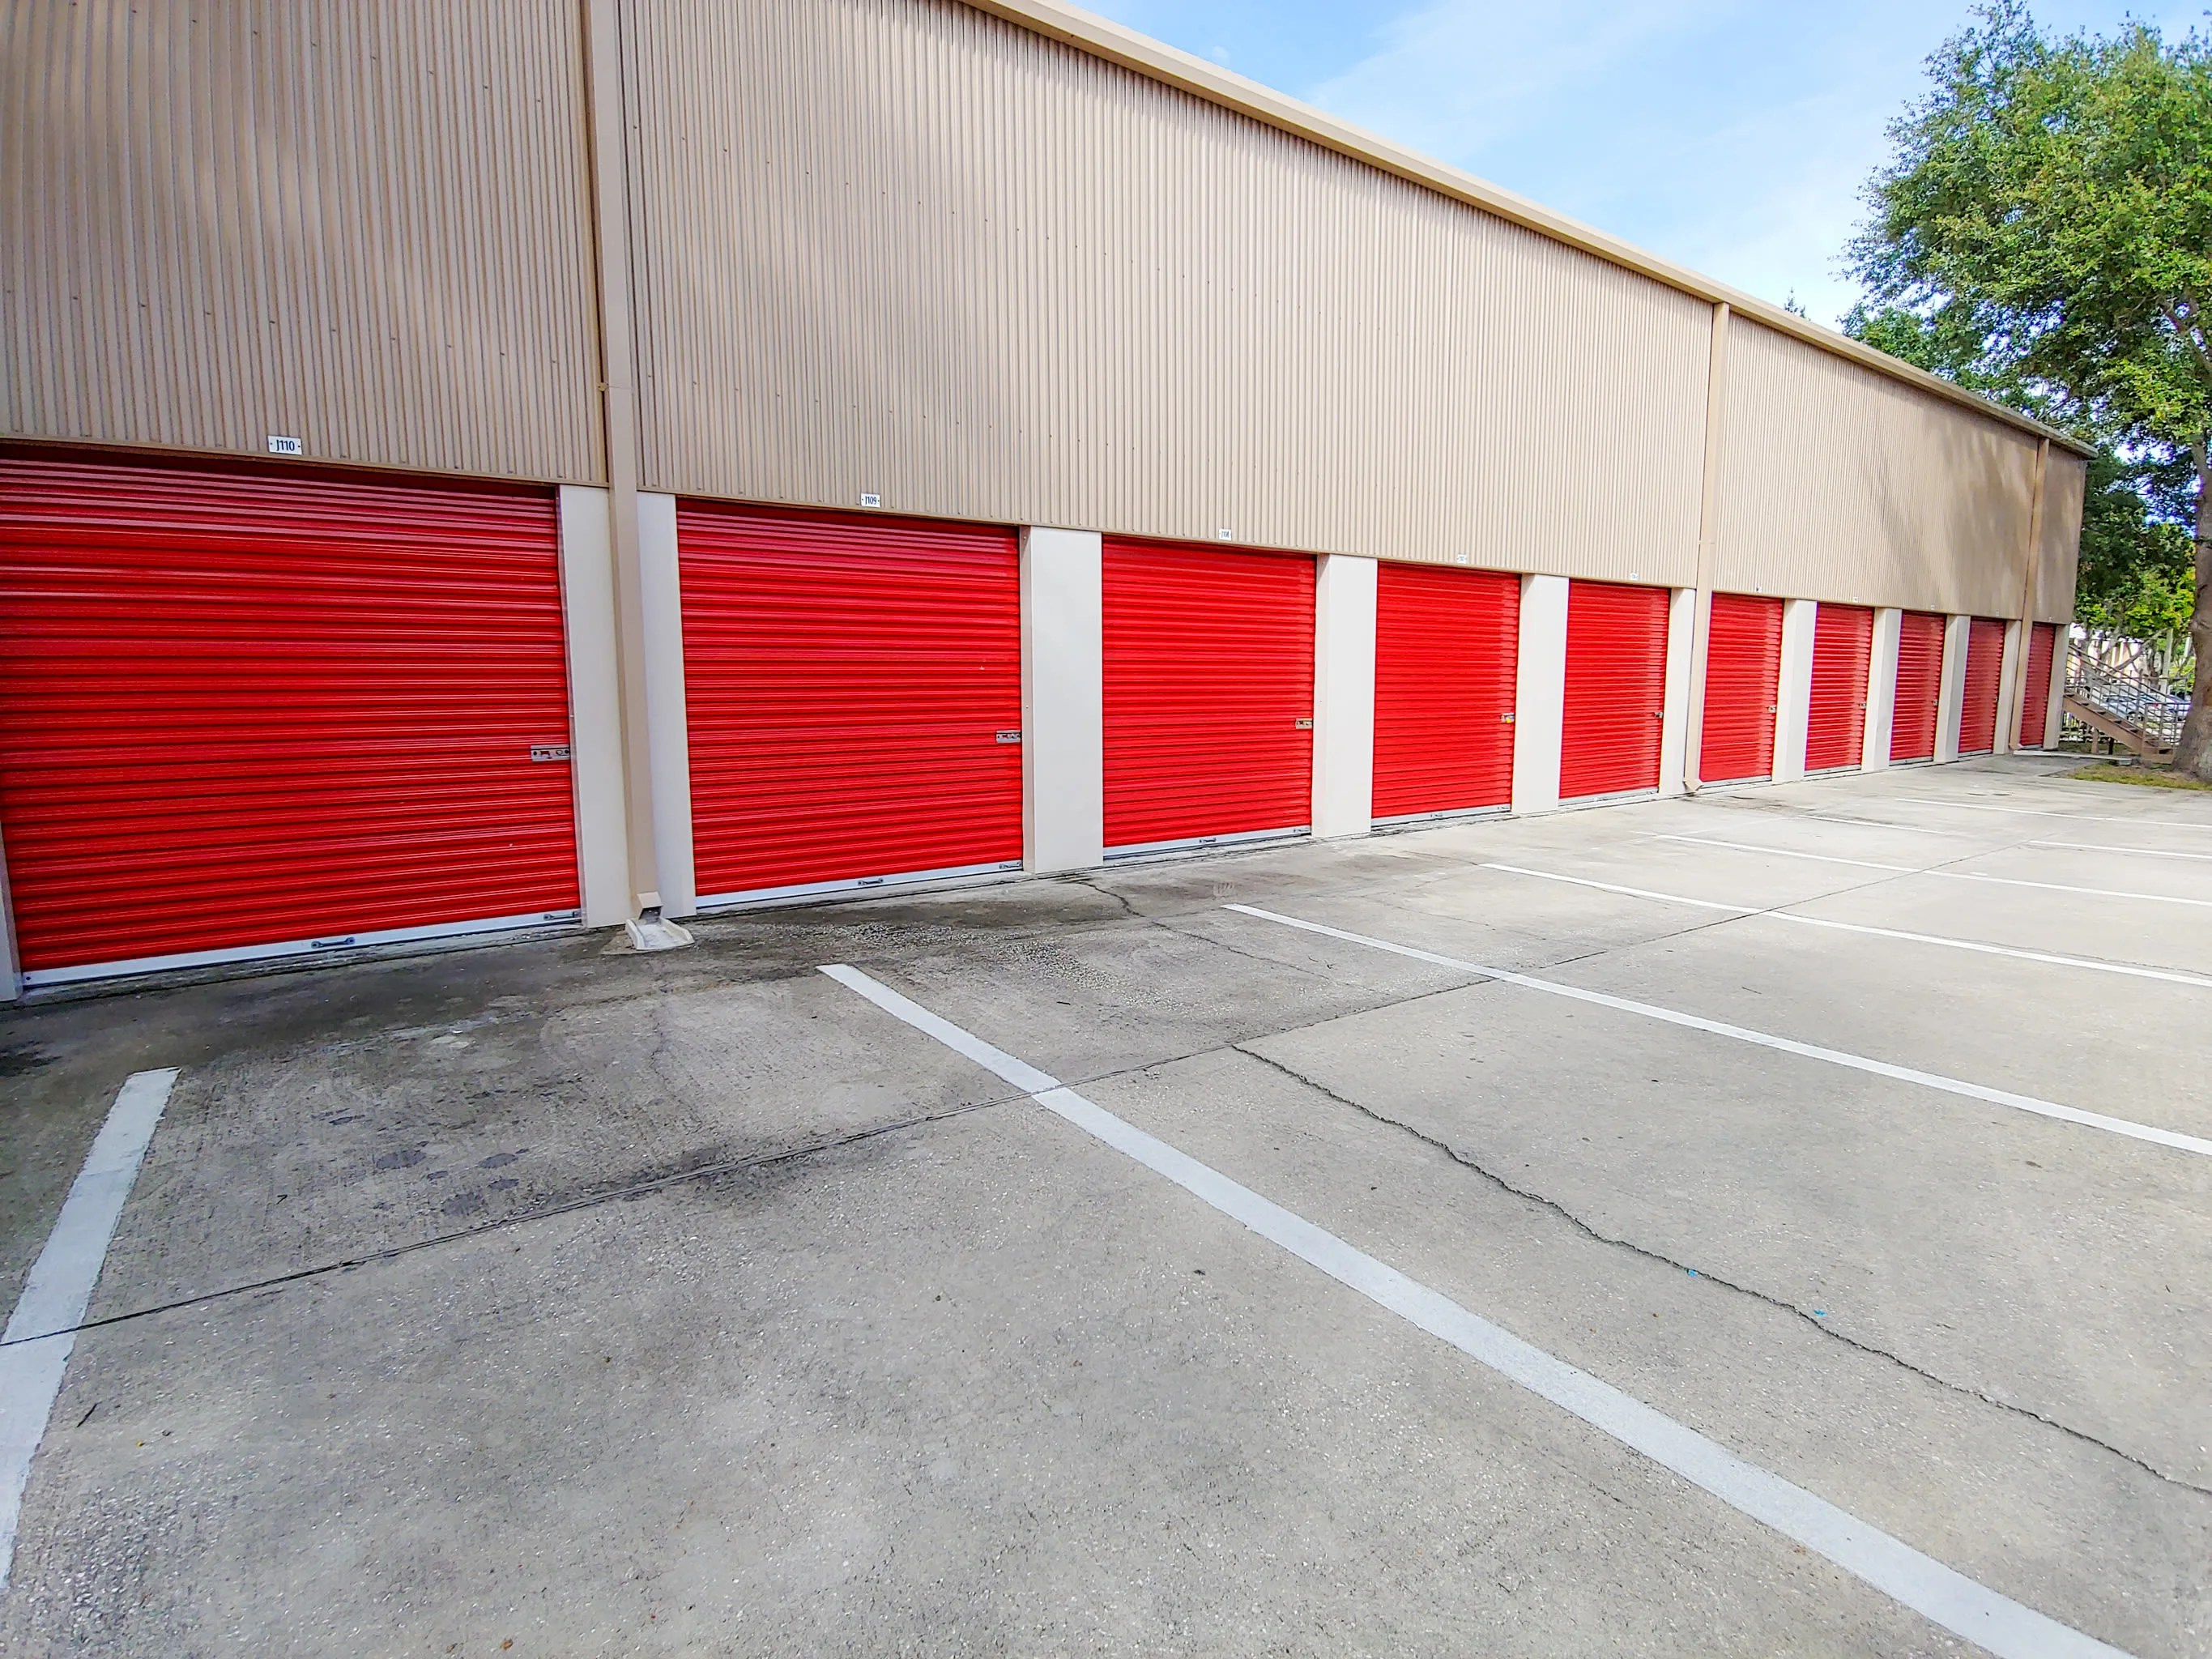 Self Storage Tampa Storage Facility Features In Tampa Fl Storquest Self Storage